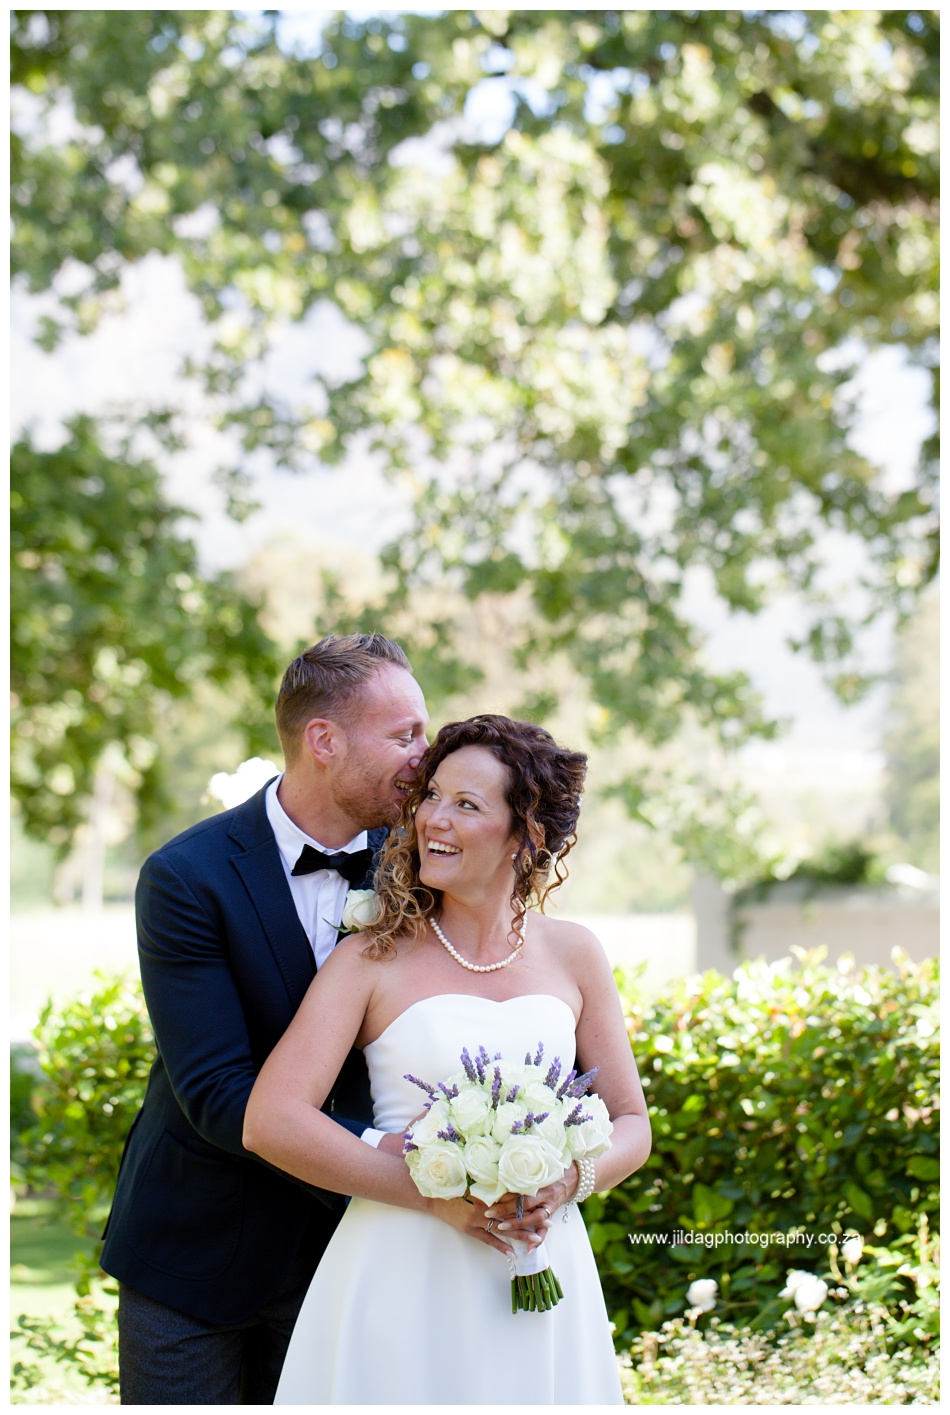 Jilda-G-Photography-wedding-Boschendal_0535